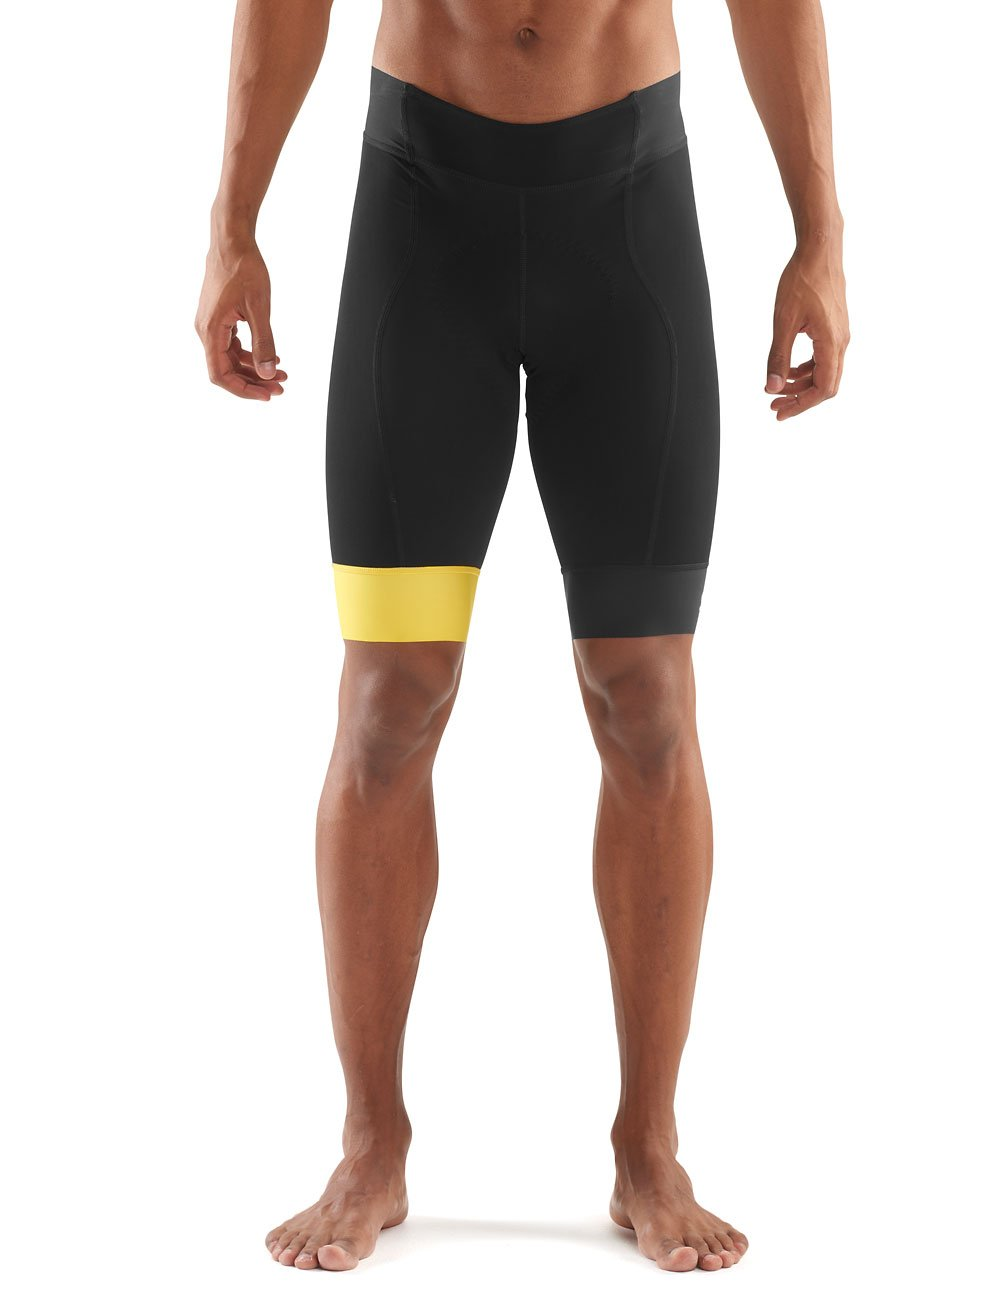 SKINS Men's Dynamic Cycle Compression 1/2 Tights/Shorts Skins North America ZC0038002-P